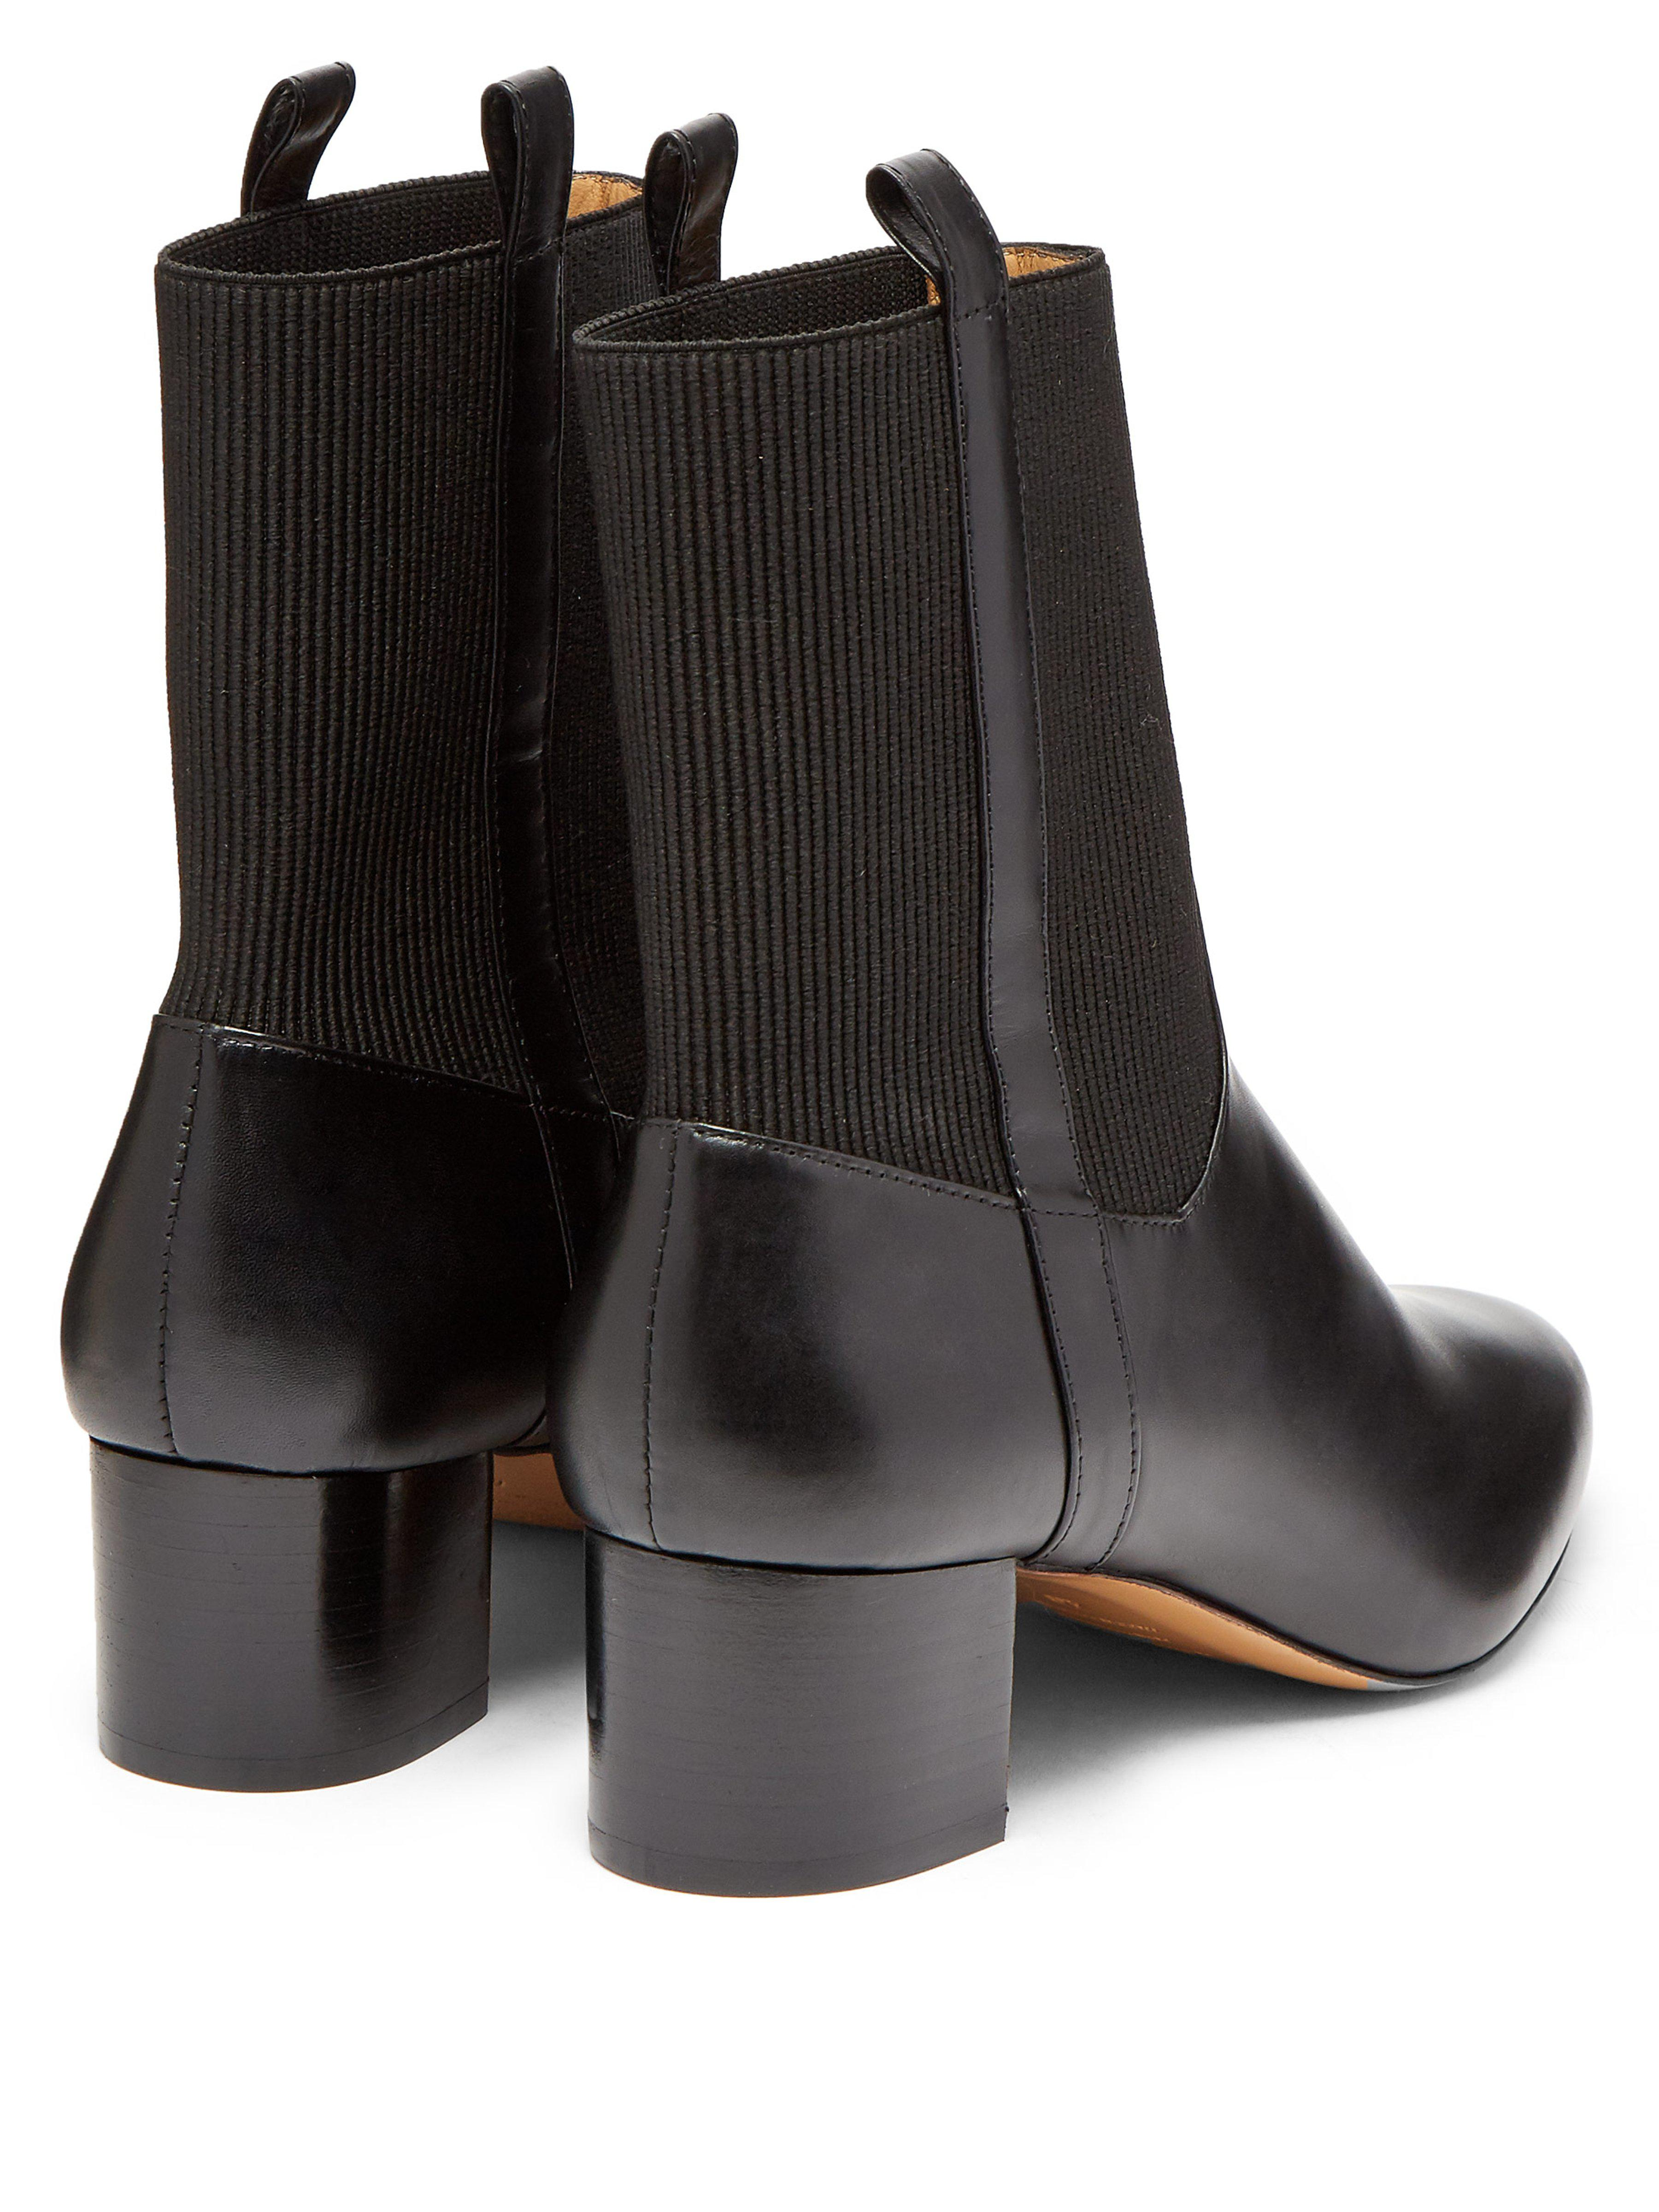 A.P.C. Chantal Leather Ankle Boots in Black